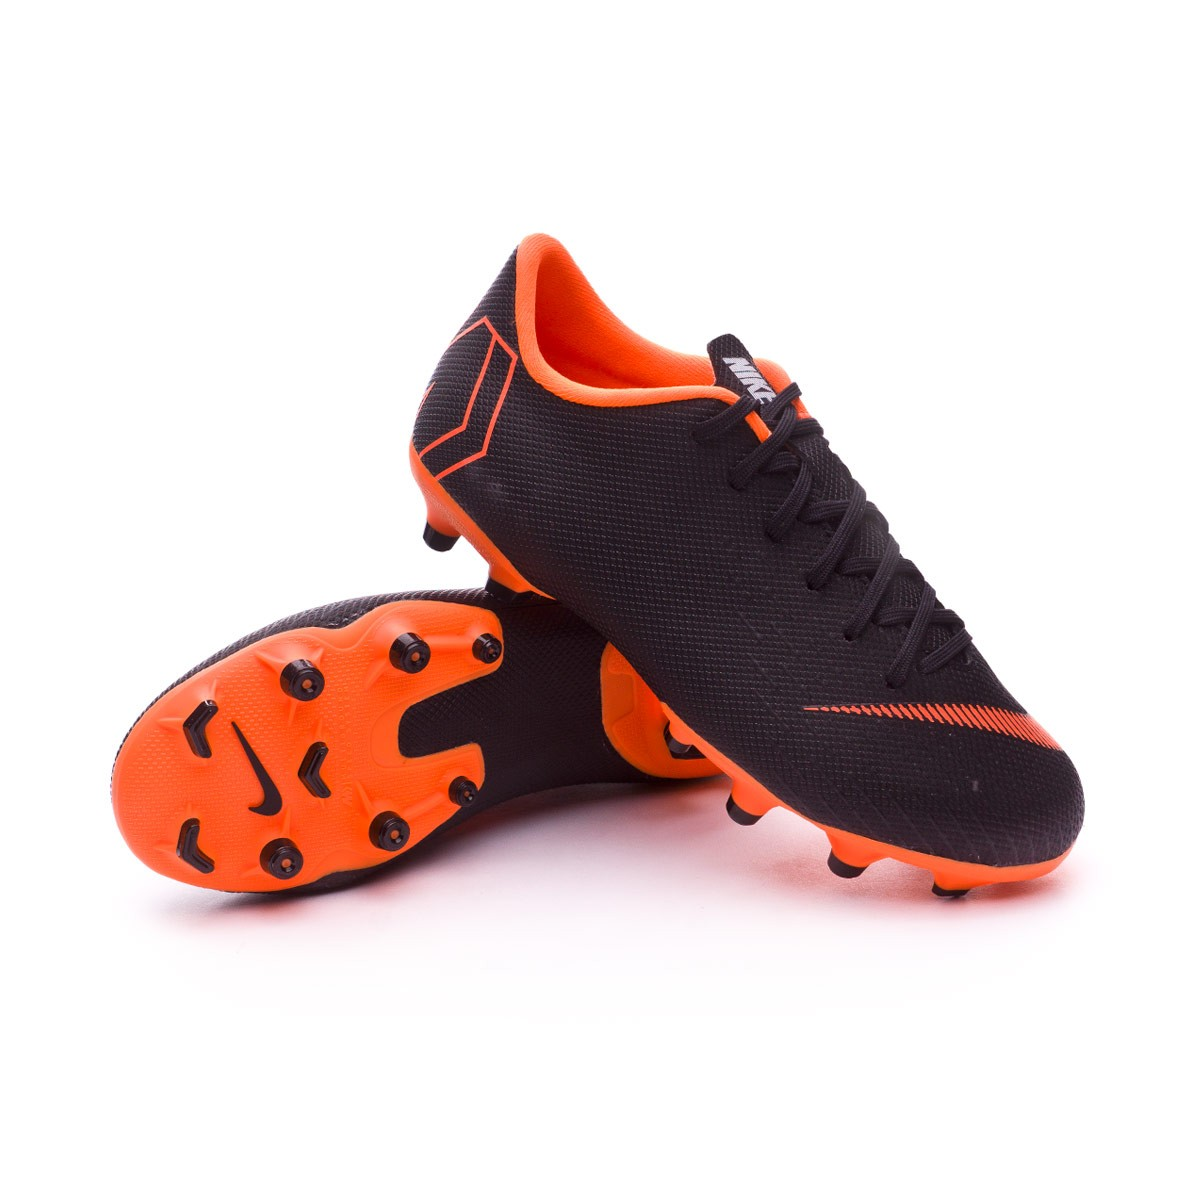 2f1d72af9 Nike Kids Mercurial Vapor XII Academy GS MG Football Boots. Black-Total  orange-White ...